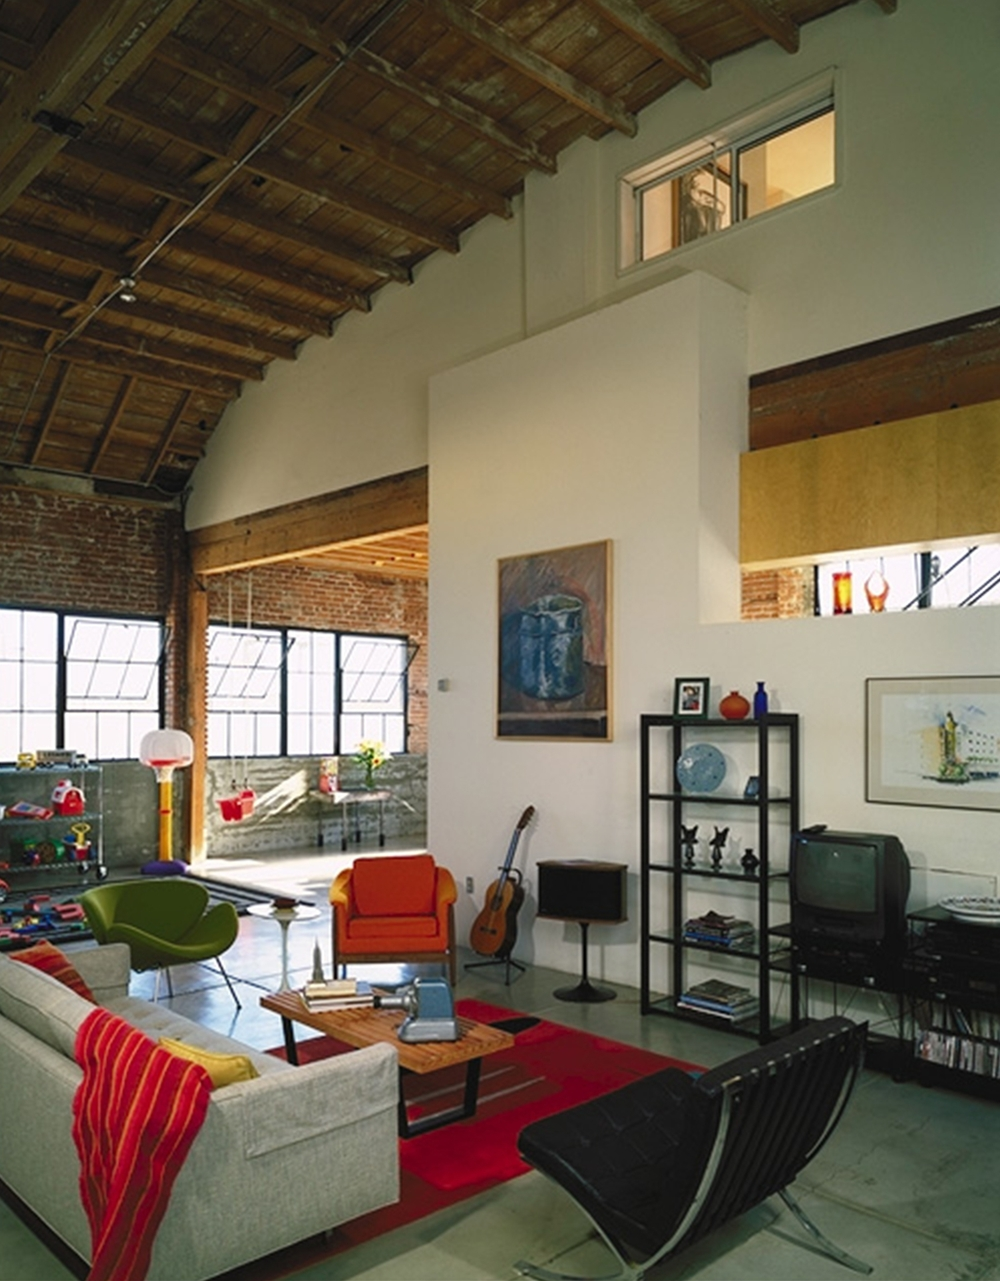 Waltmon Lofts